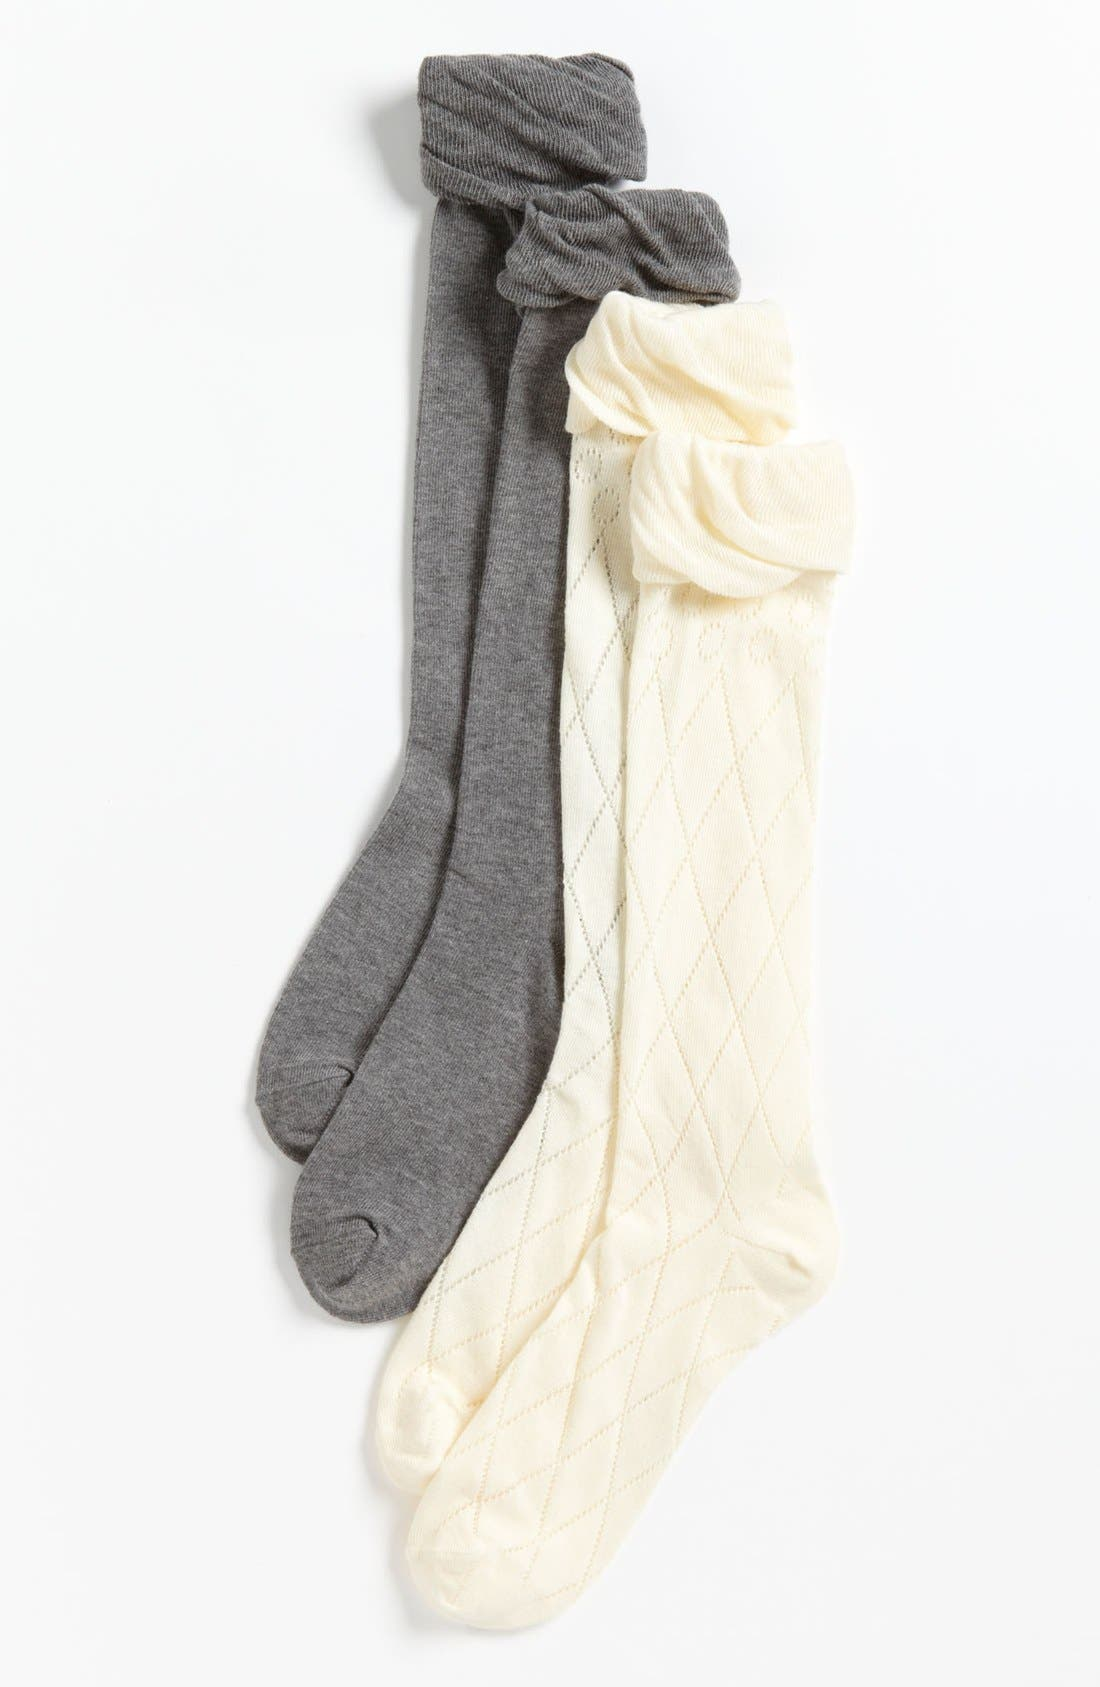 Main Image - Nordstrom Knee High Socks (2-Pack) (Toddler, Little Girls & Big Girls)